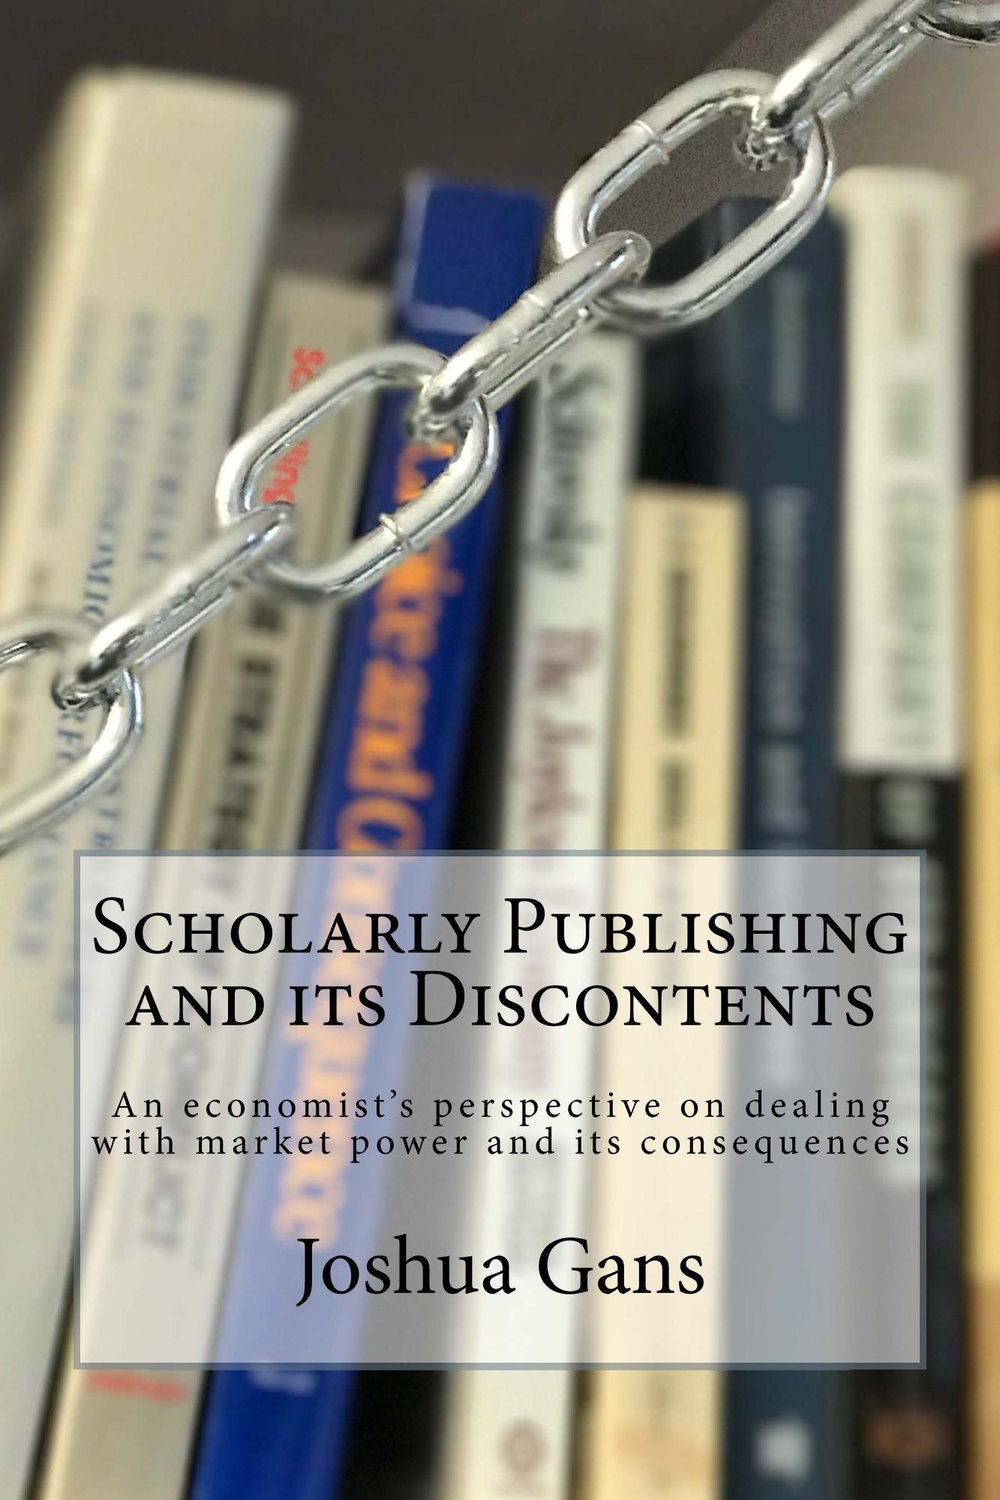 Scholarly Publishing and its Discontents - Published in 2017 this book explores market power in scholarly publishing and what can be done about it.